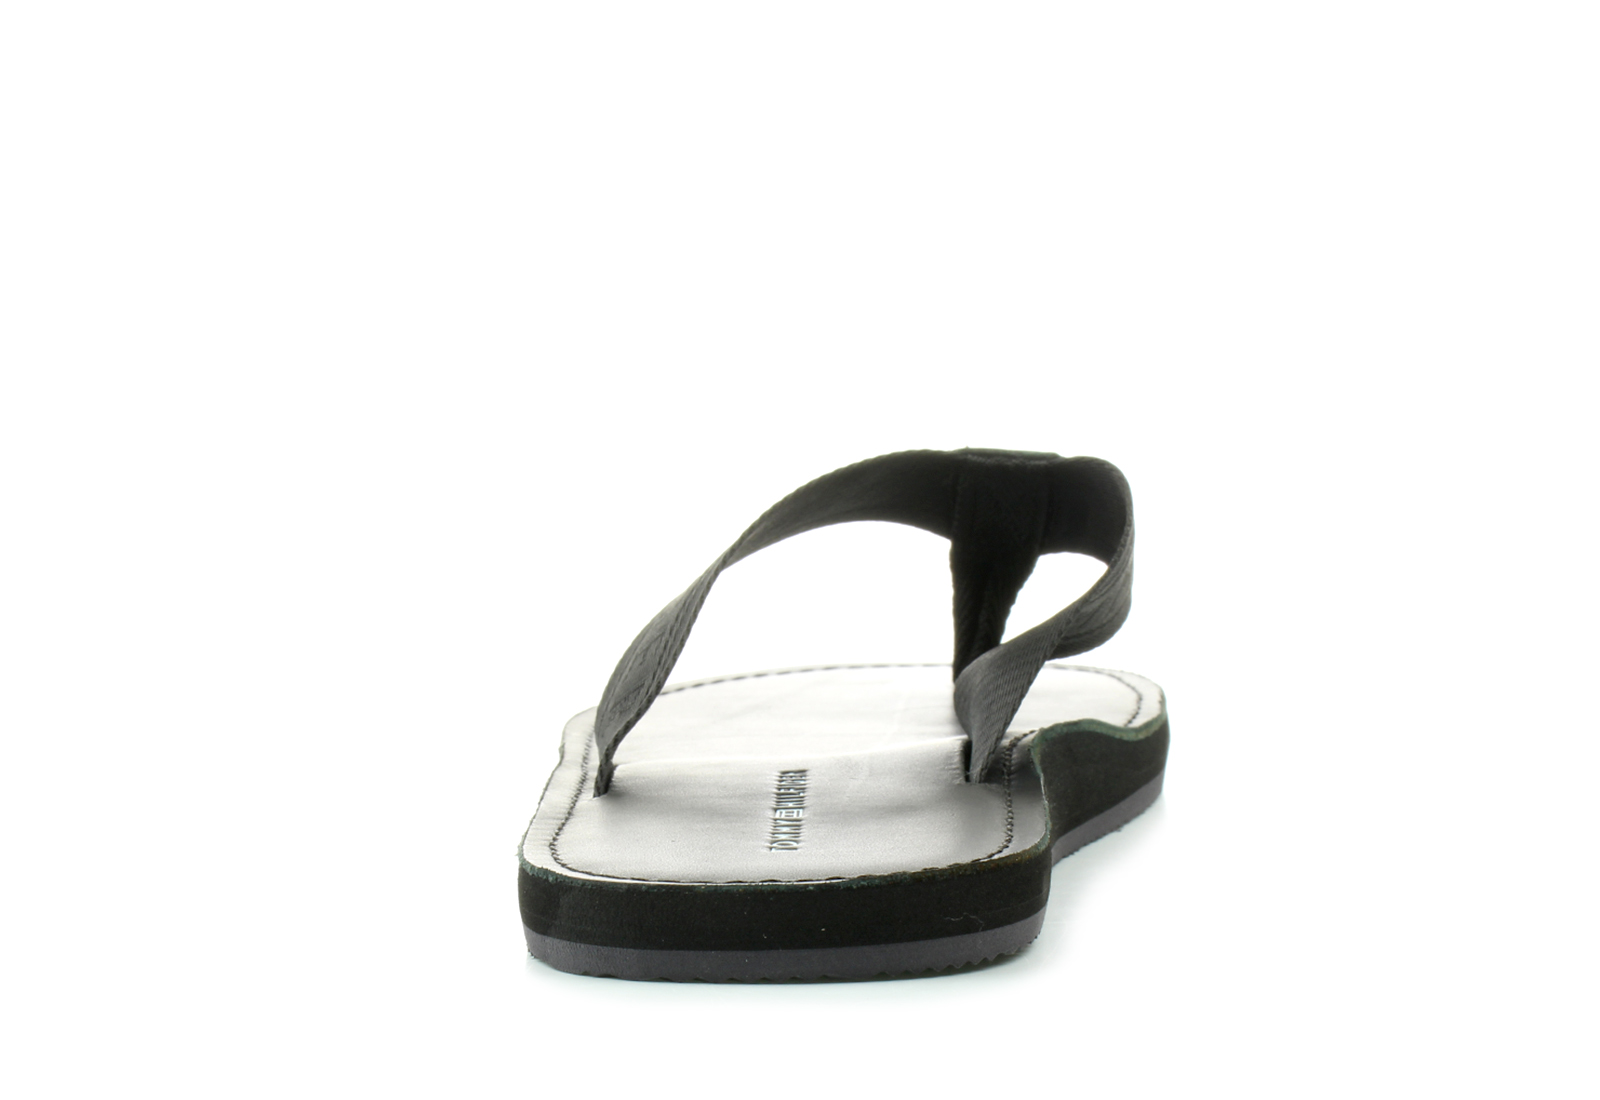 7adc8555df Tommy Hilfiger Papucs - Floyd 22 - 18S-1365-990 - Office Shoes ...